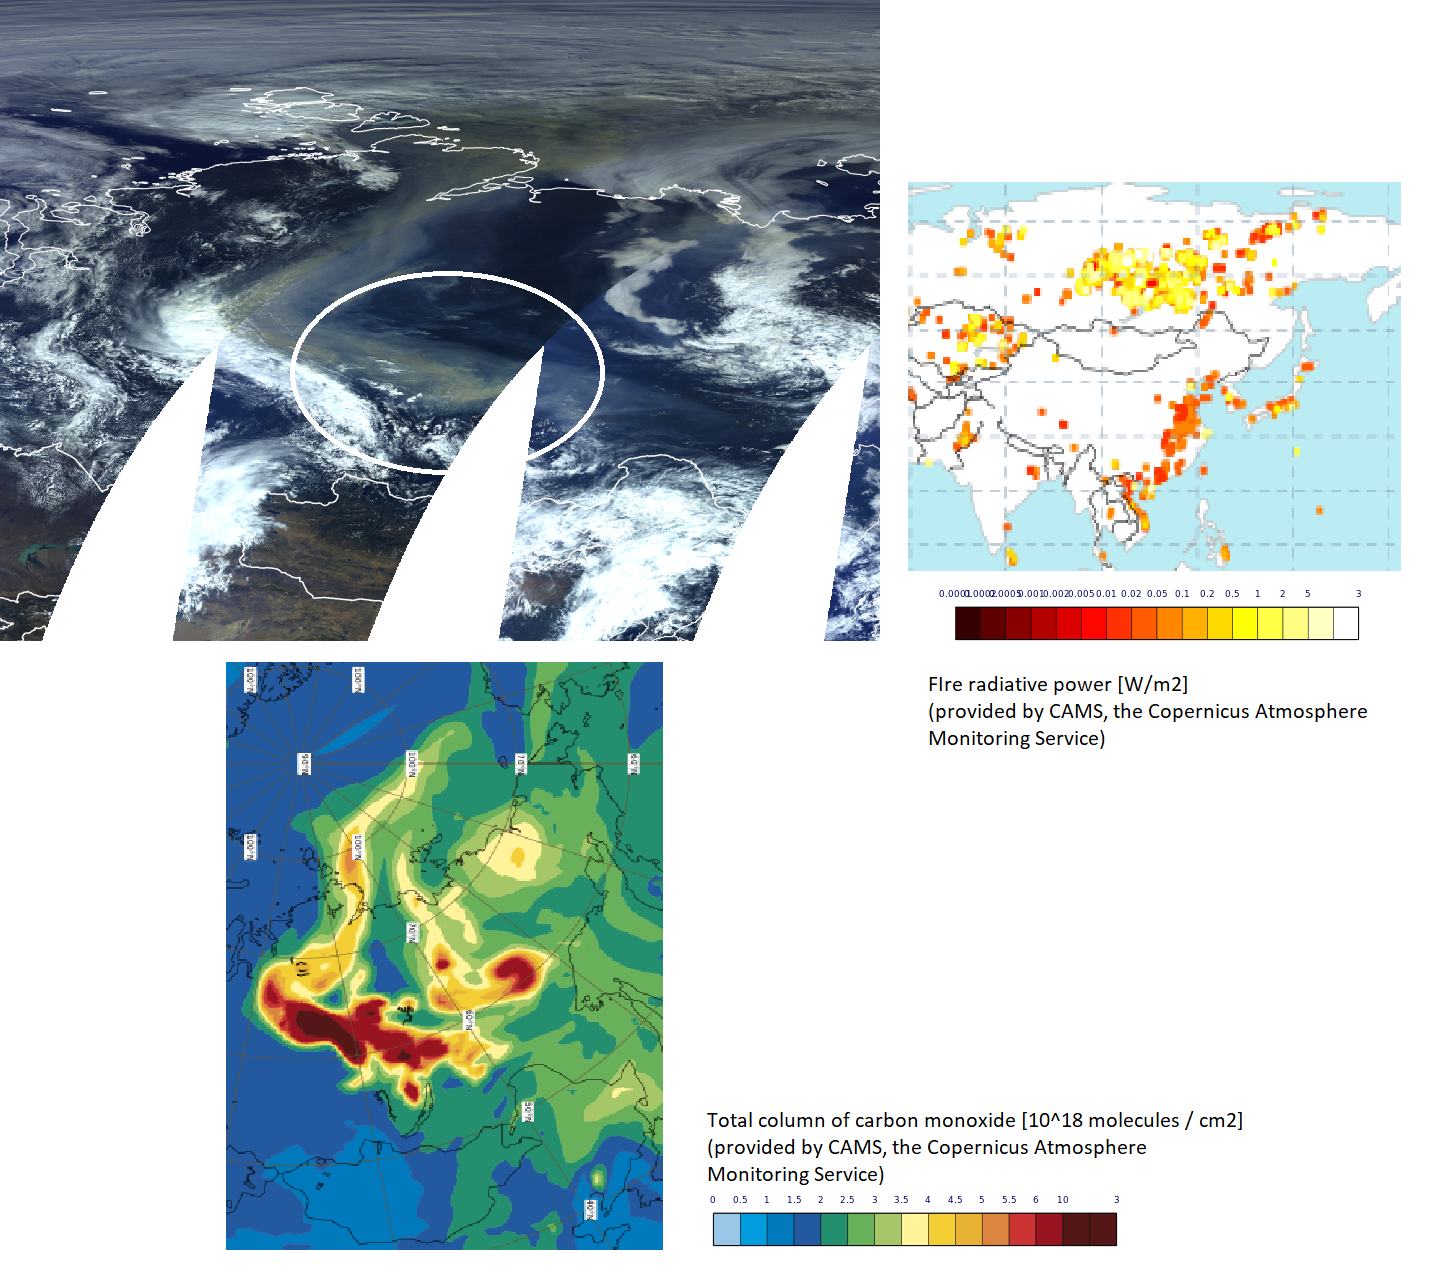 Sentinel-3 OLCI True Colour RGB, 10 August 03:44 UTC, compared with the CAMS fire intensity and carbon monoxide analysis products